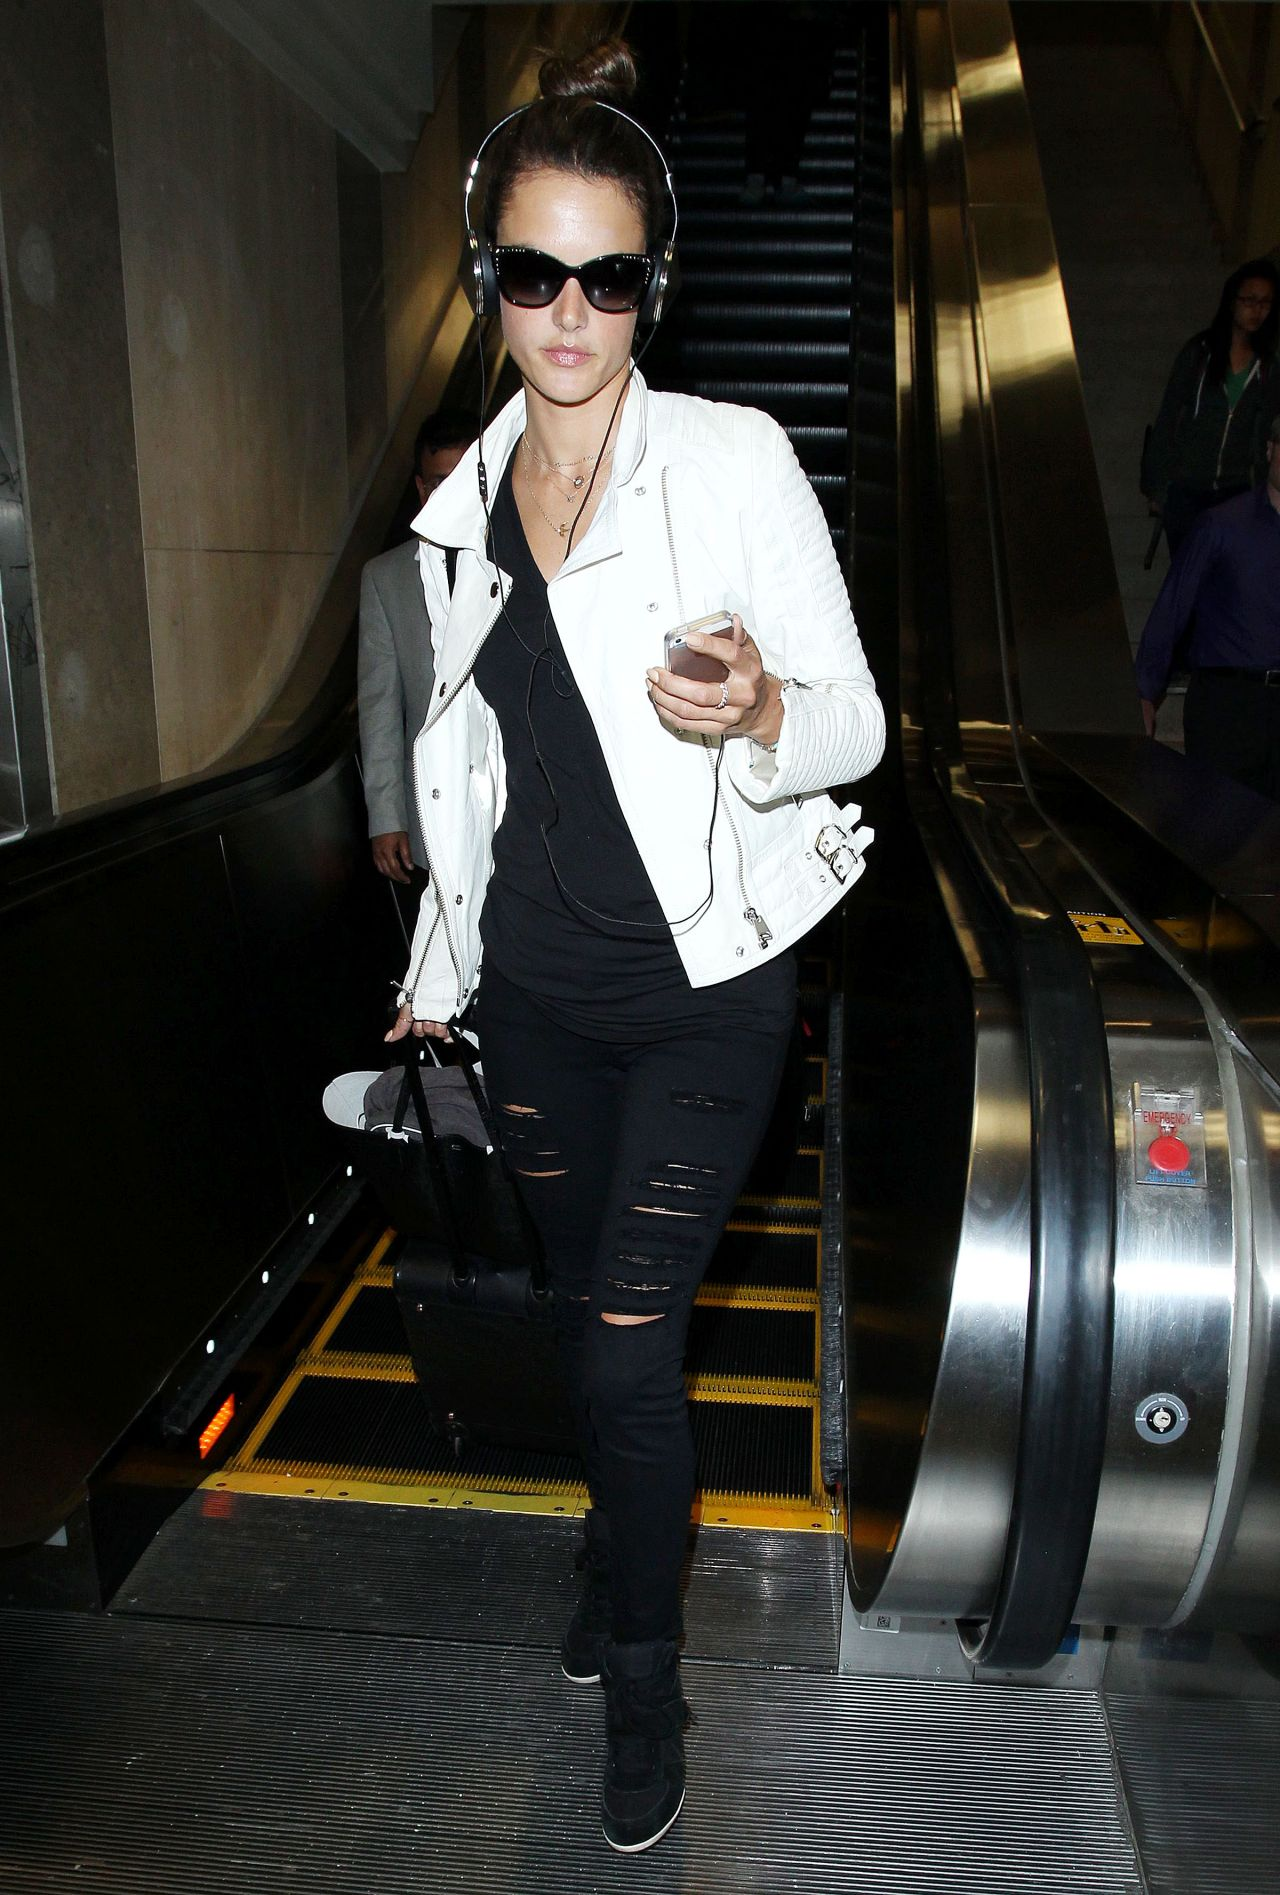 Alessandra Ambrosio - Los Angeles International Airport - May 2014